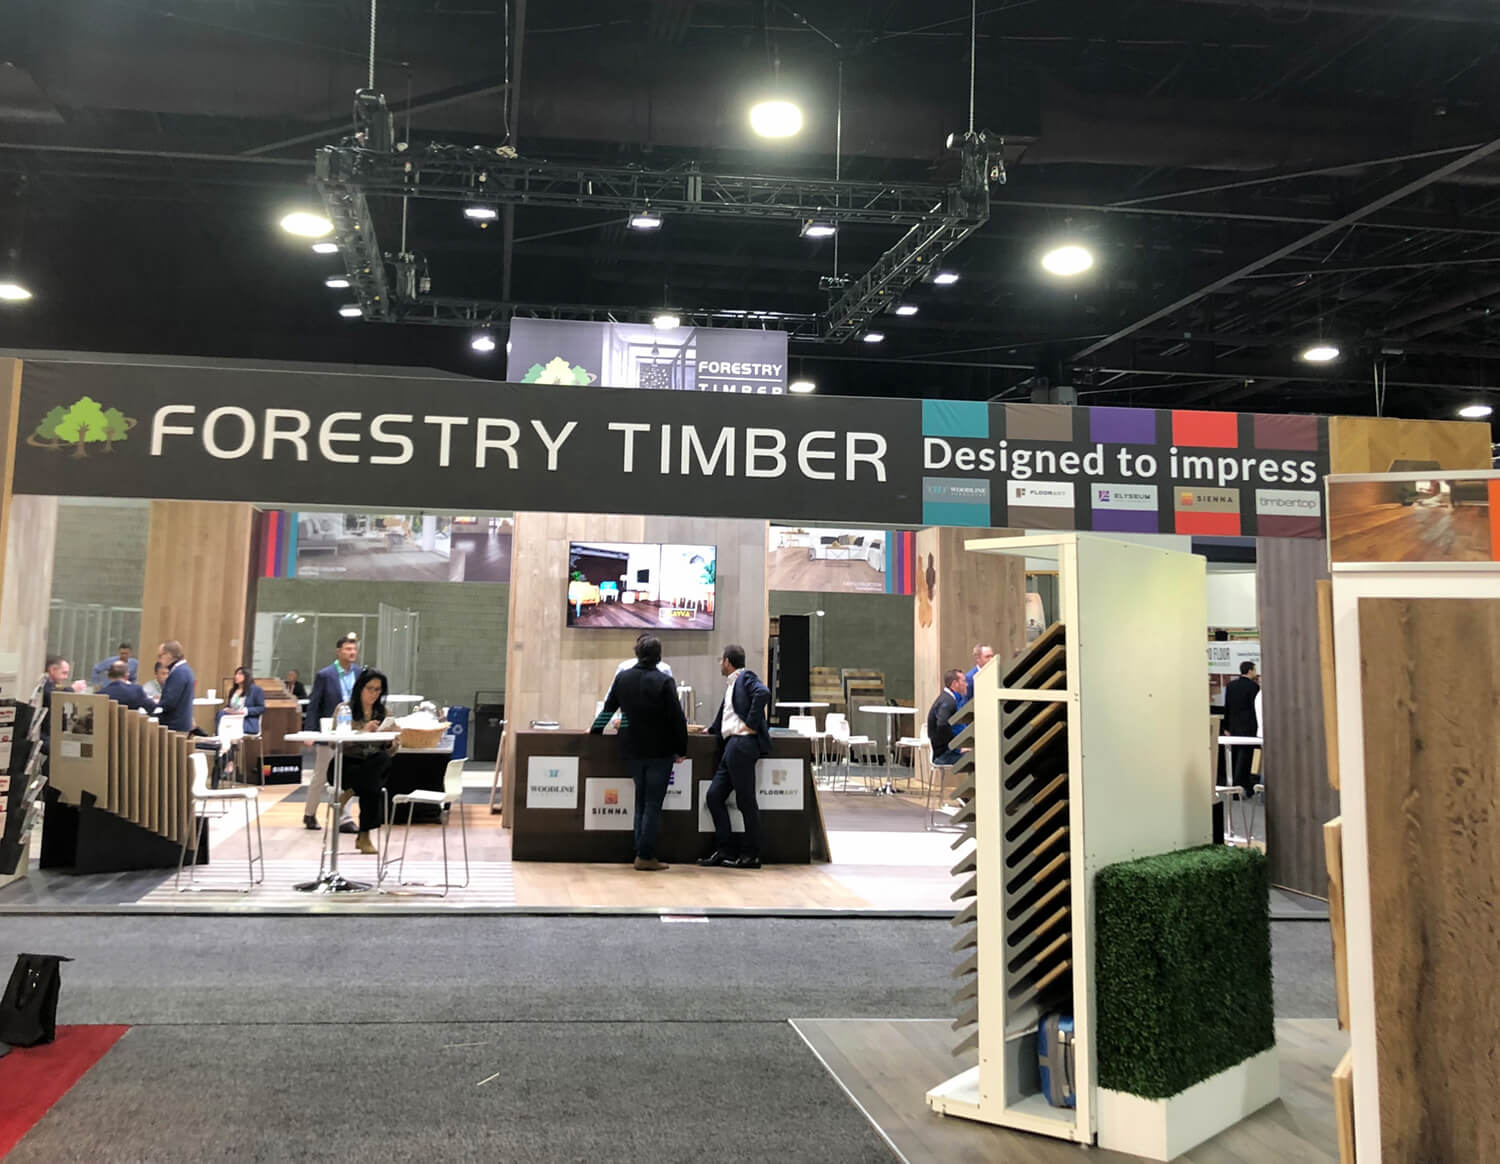 Domotex Exhibition Atlanta 2019 Forestry Timber-16